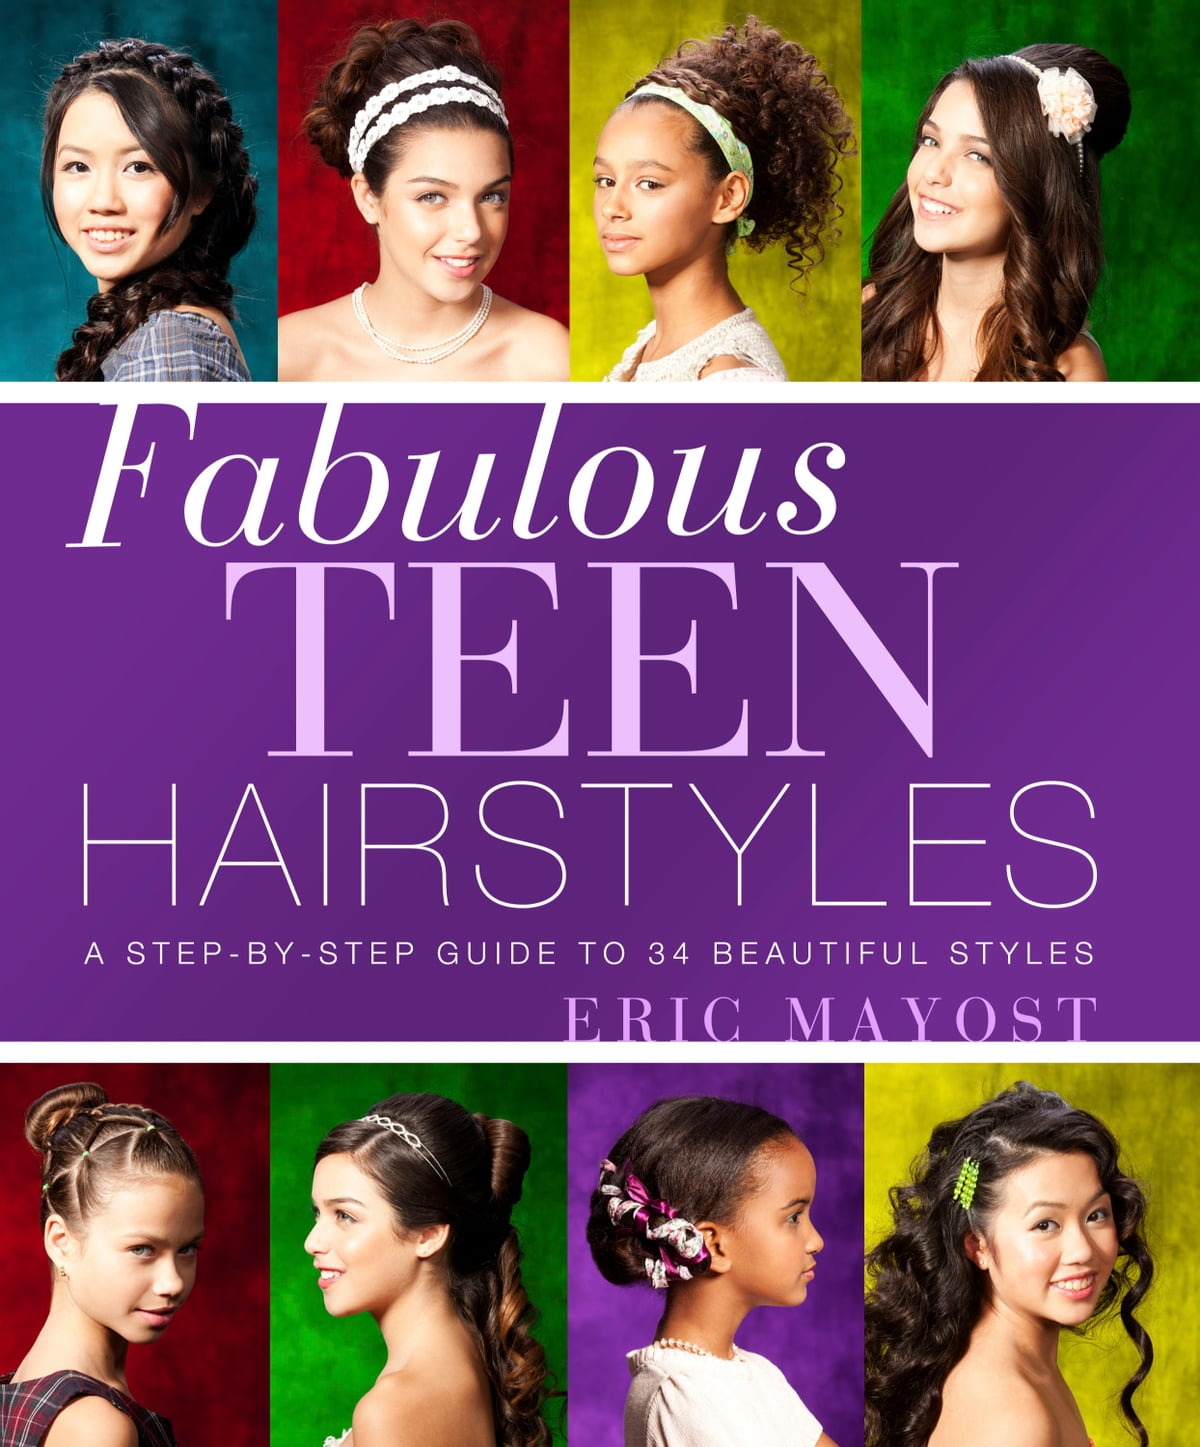 Fabulous Teen Hairstyles eBook by Eric Mayost - 9781402786099 | Rakuten Kobo